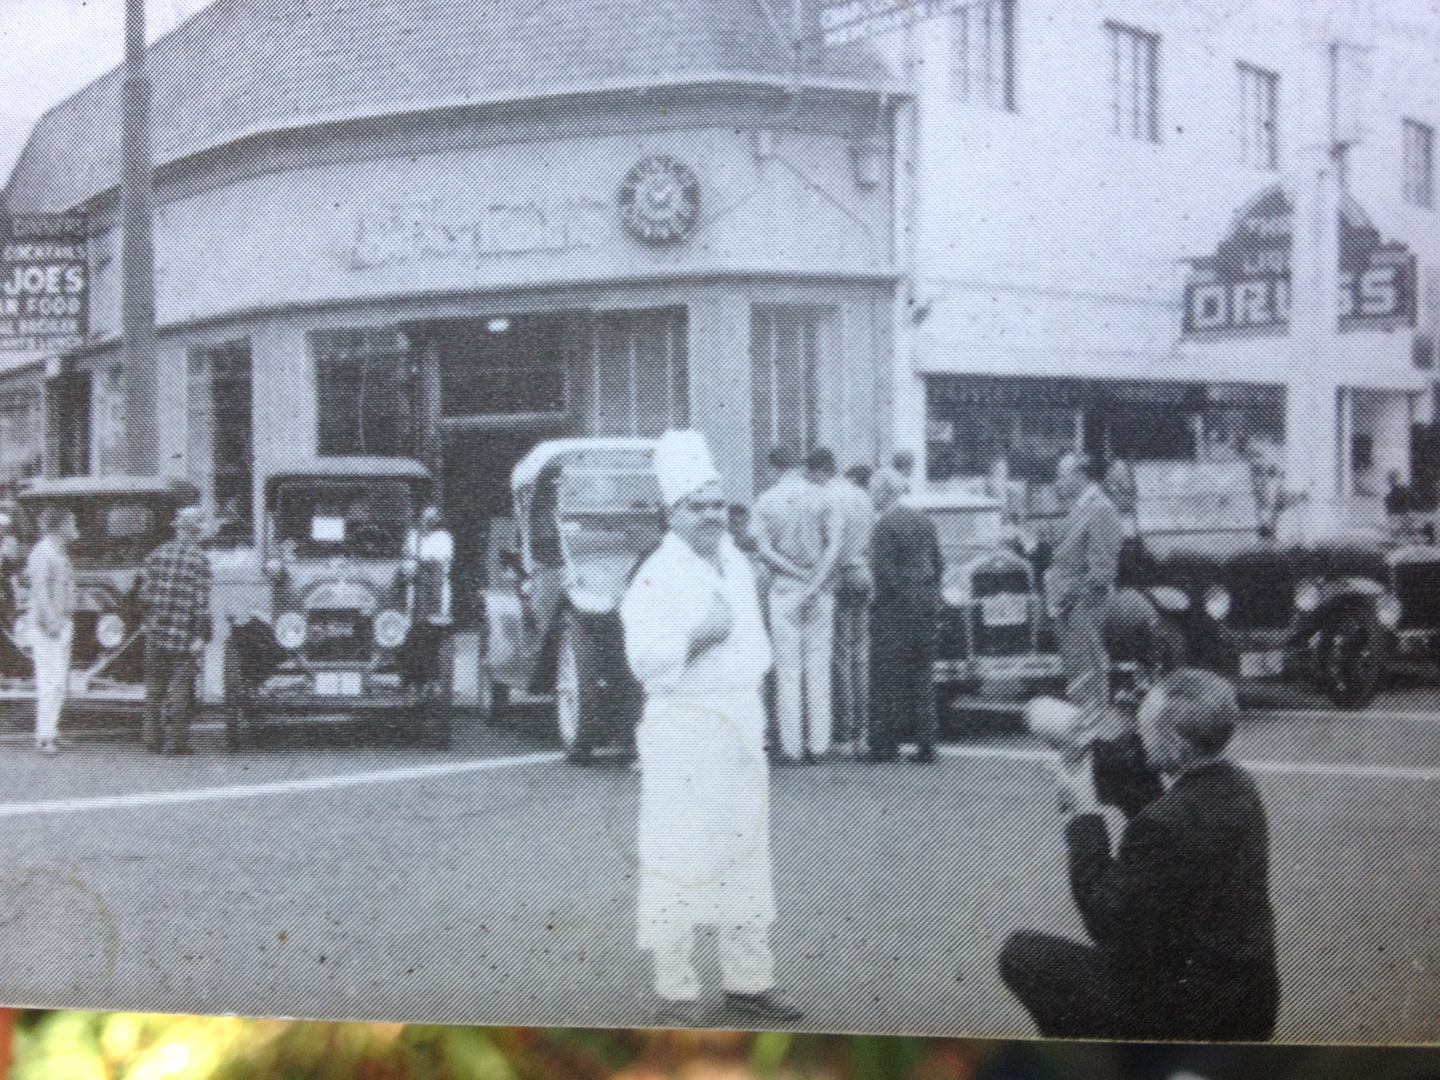 Vintage Bay Area Diner's Head Chef Posing for a Photograph